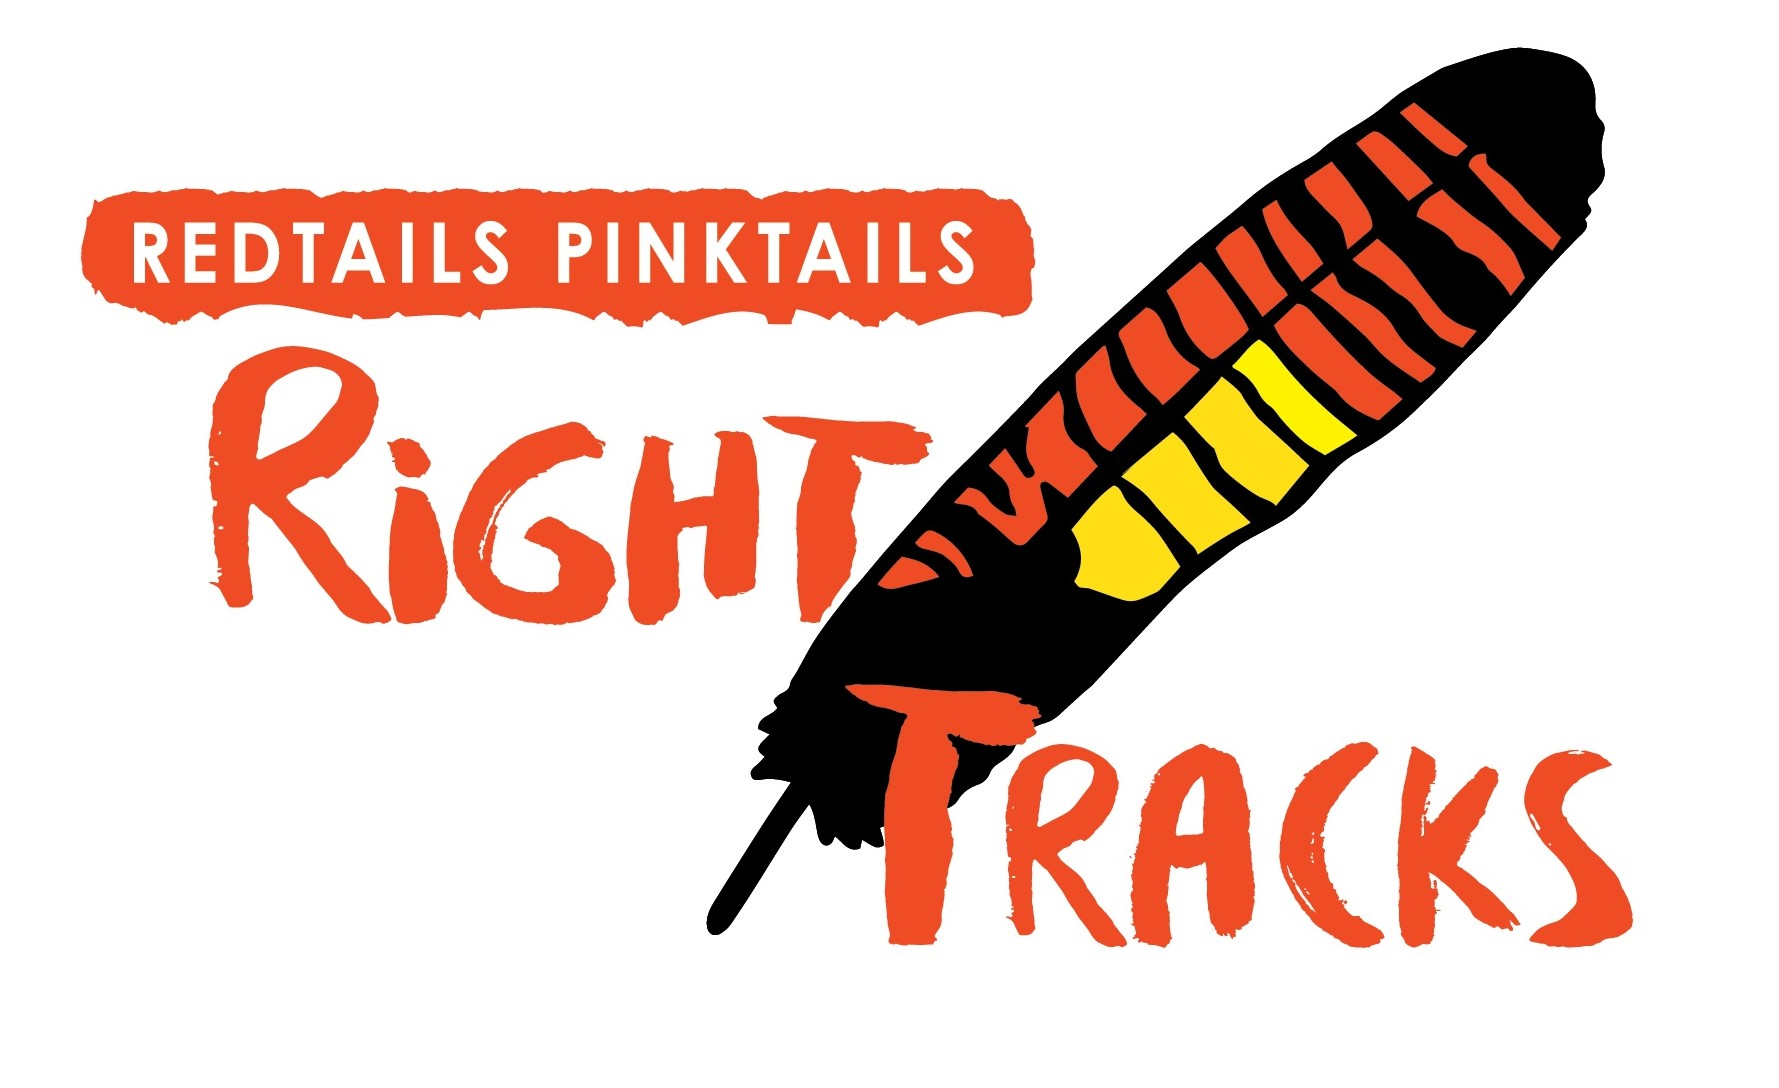 right tracks logo for email signature